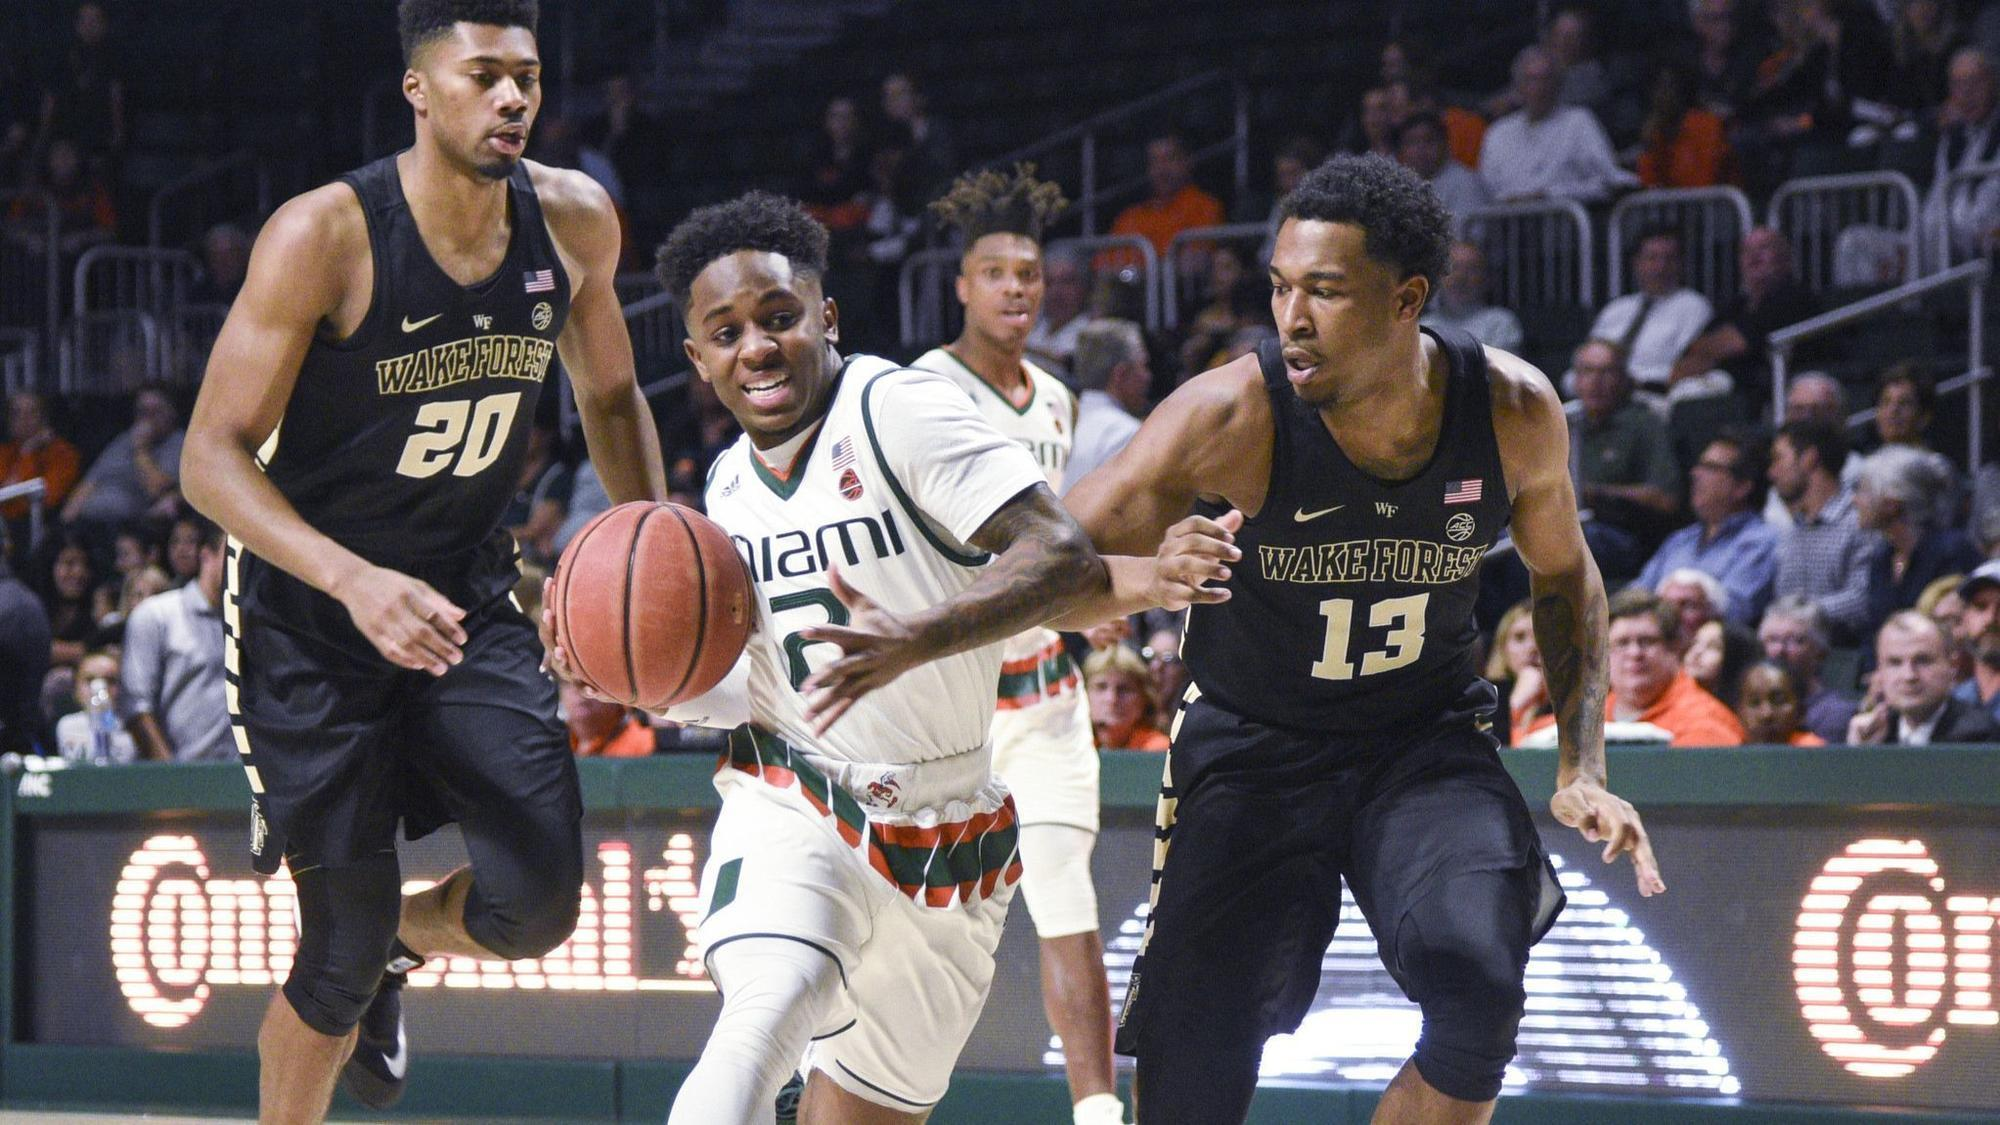 Hurricanes Men S Basketball Team To Face Acc Road Tests At Duke